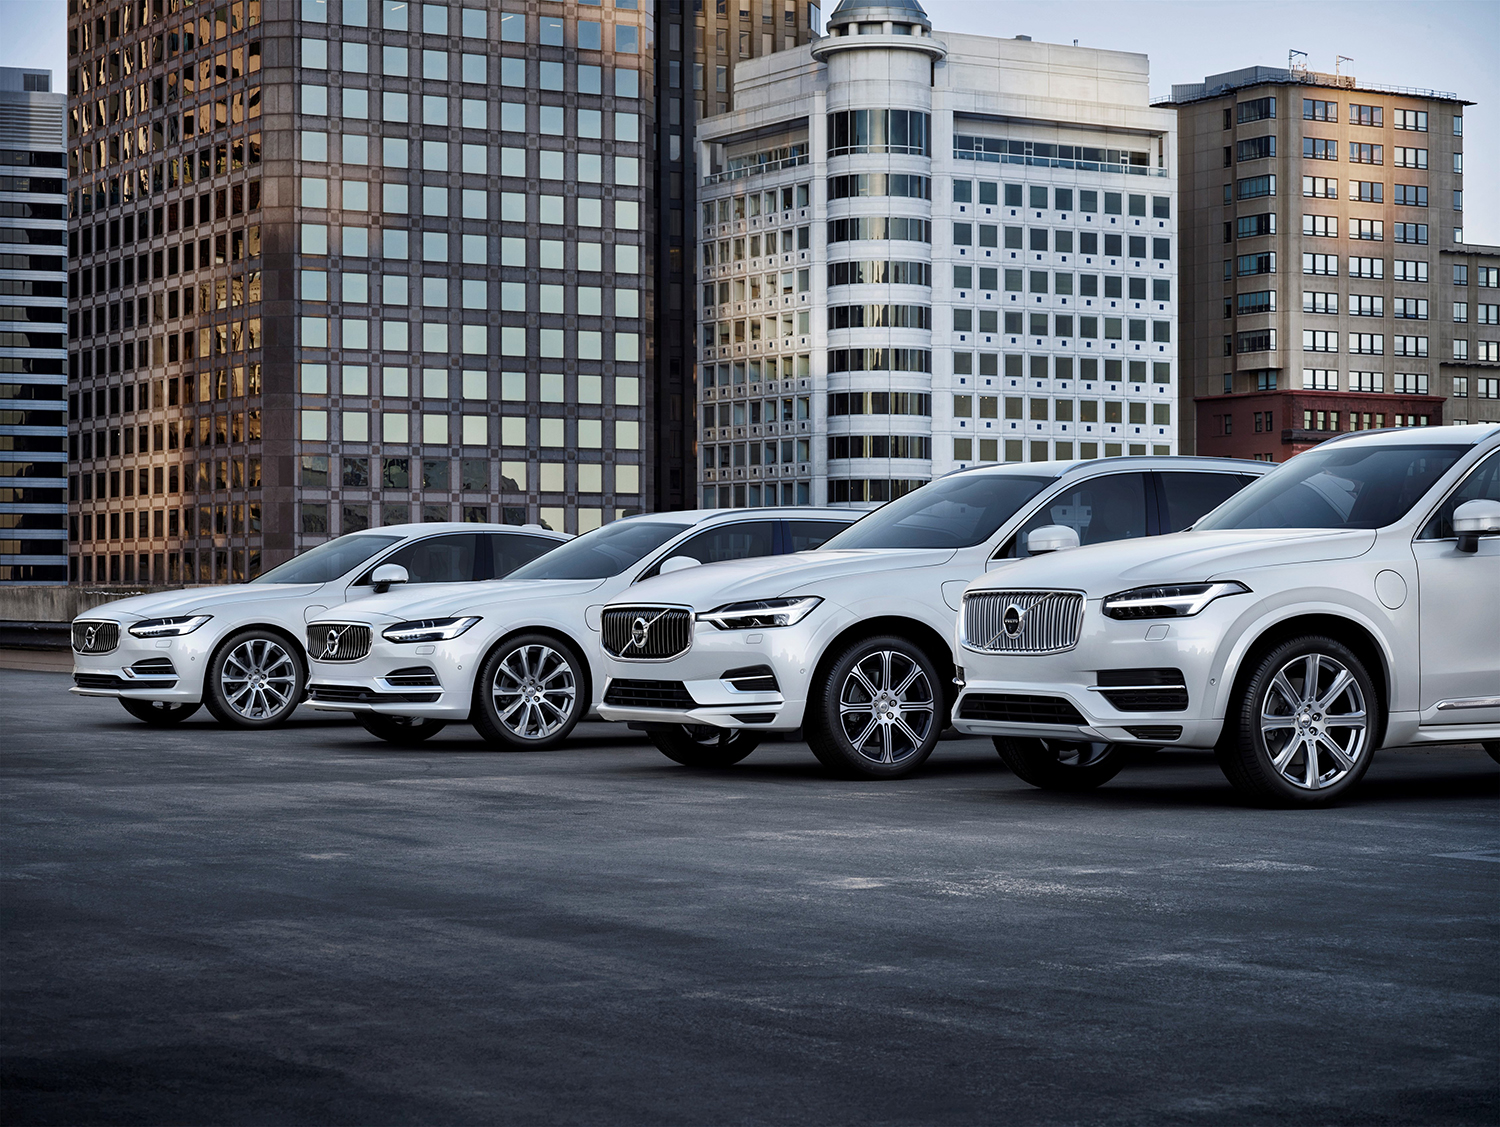 All Volvo cars to go electric